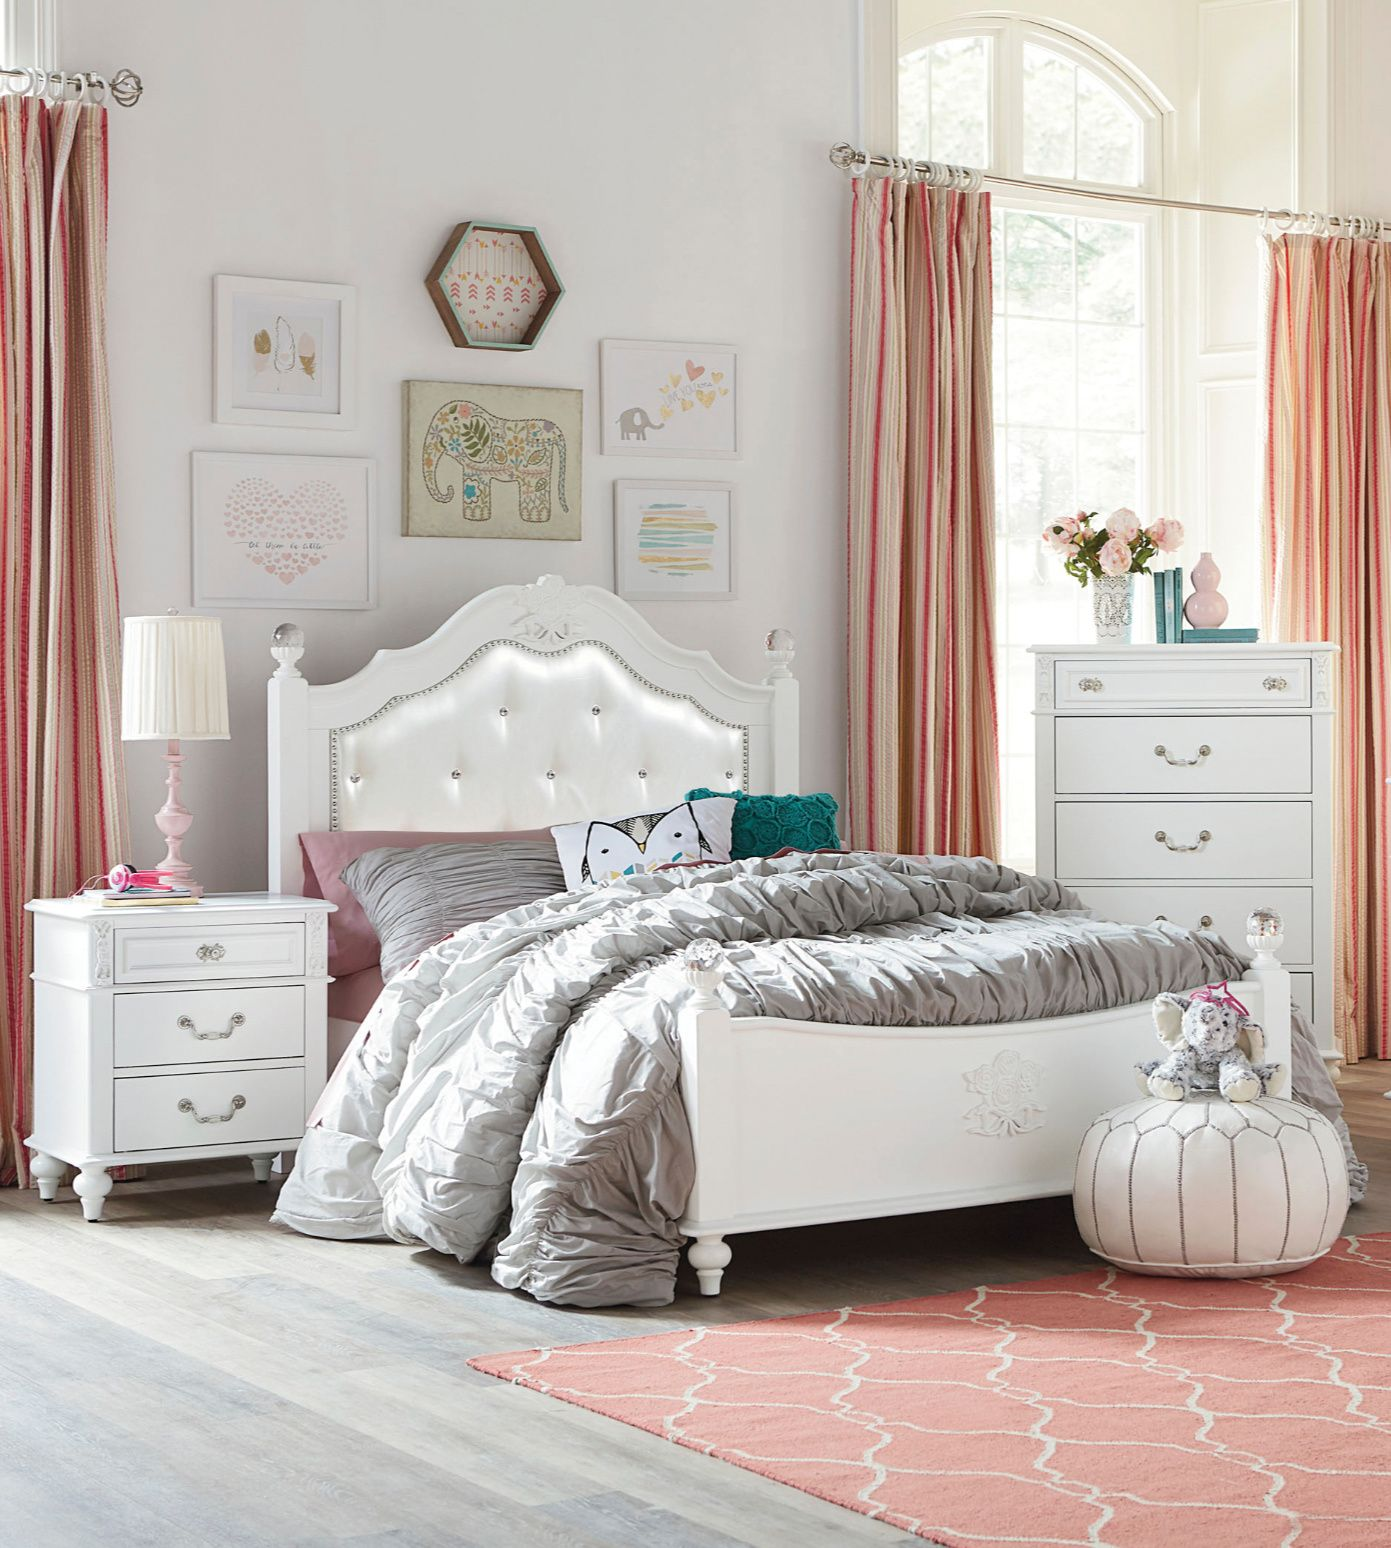 Surprise Your Princess With A Beautiful New Bedroom Featuring The Sweet Olivia White Bedroom S White Bedroom Set Standard Furniture White Bedroom Set Furniture